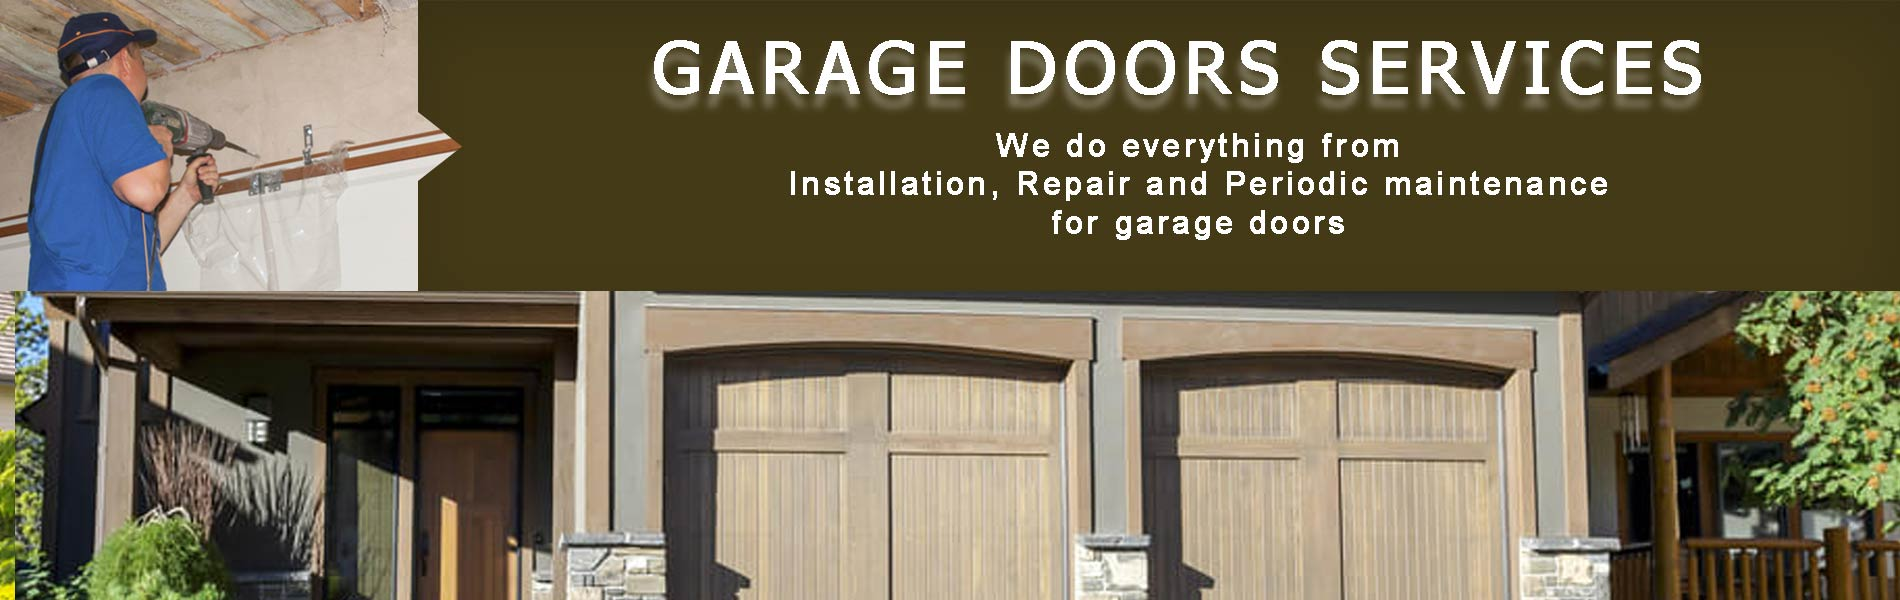 United Garage Door Service Bronx, NY 347-778-2897